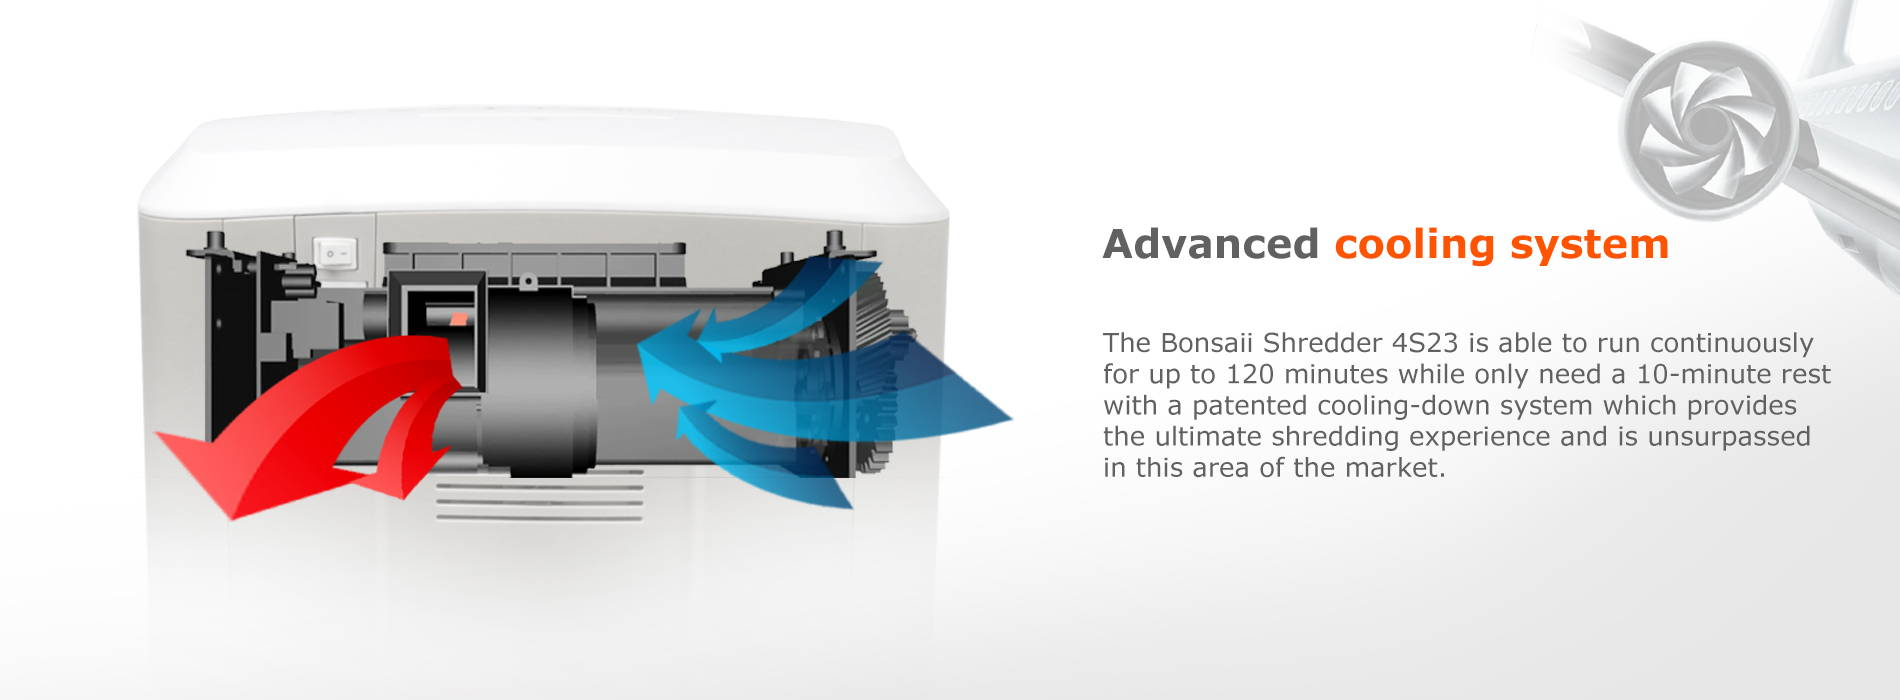 Advanced cooling system  The Bonsaii Shredder 4S23 is able to run continuously for up to 120 minutes while only need a 10-minute rest with a patented cooling-down system which provides the ultimate shredding experience and is unsurpassed in this area of the market.